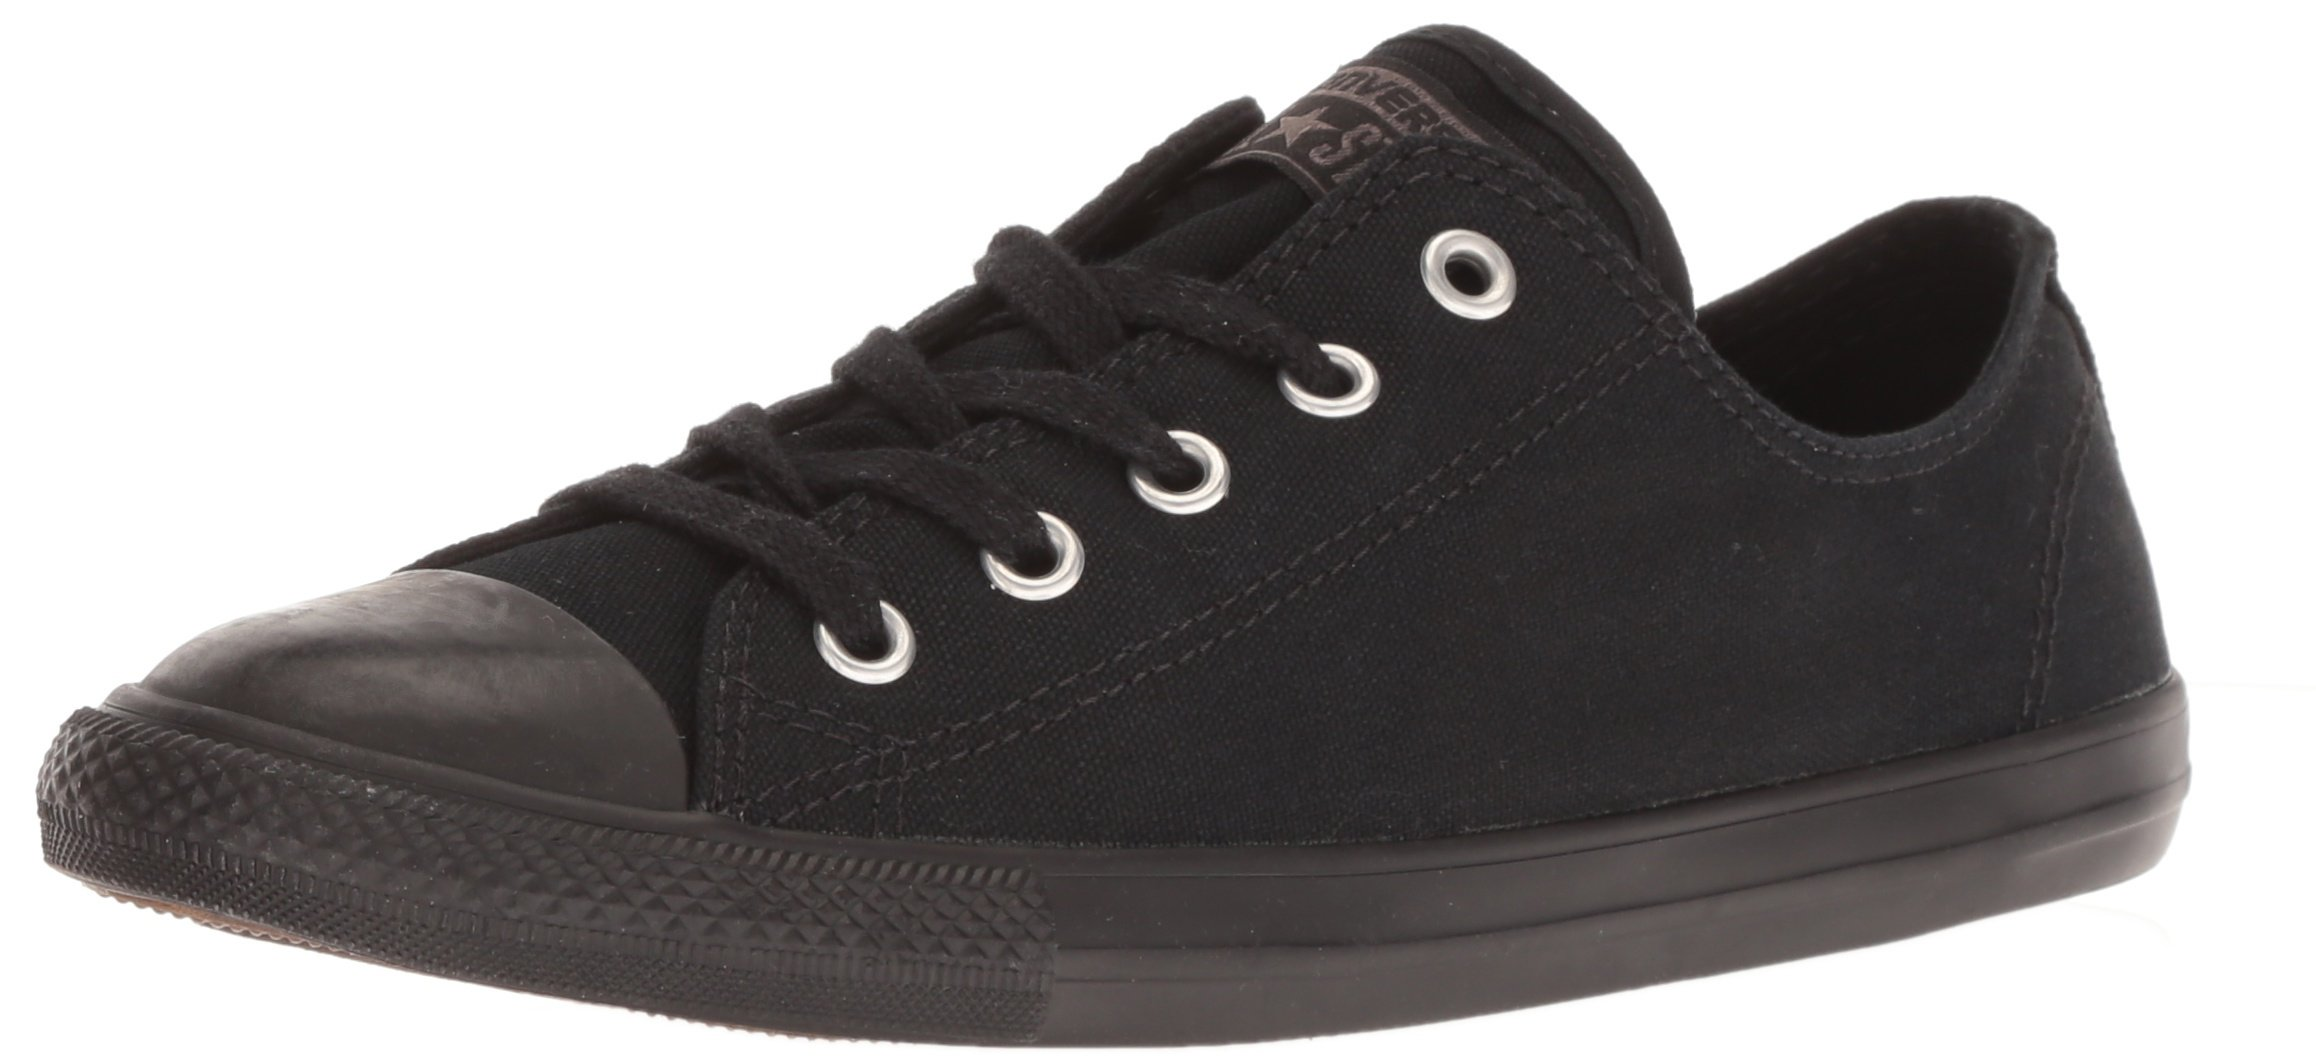 Converse Women's Chuck Taylor Dainty Low Top Sneaker Black Monochrome 11 M US